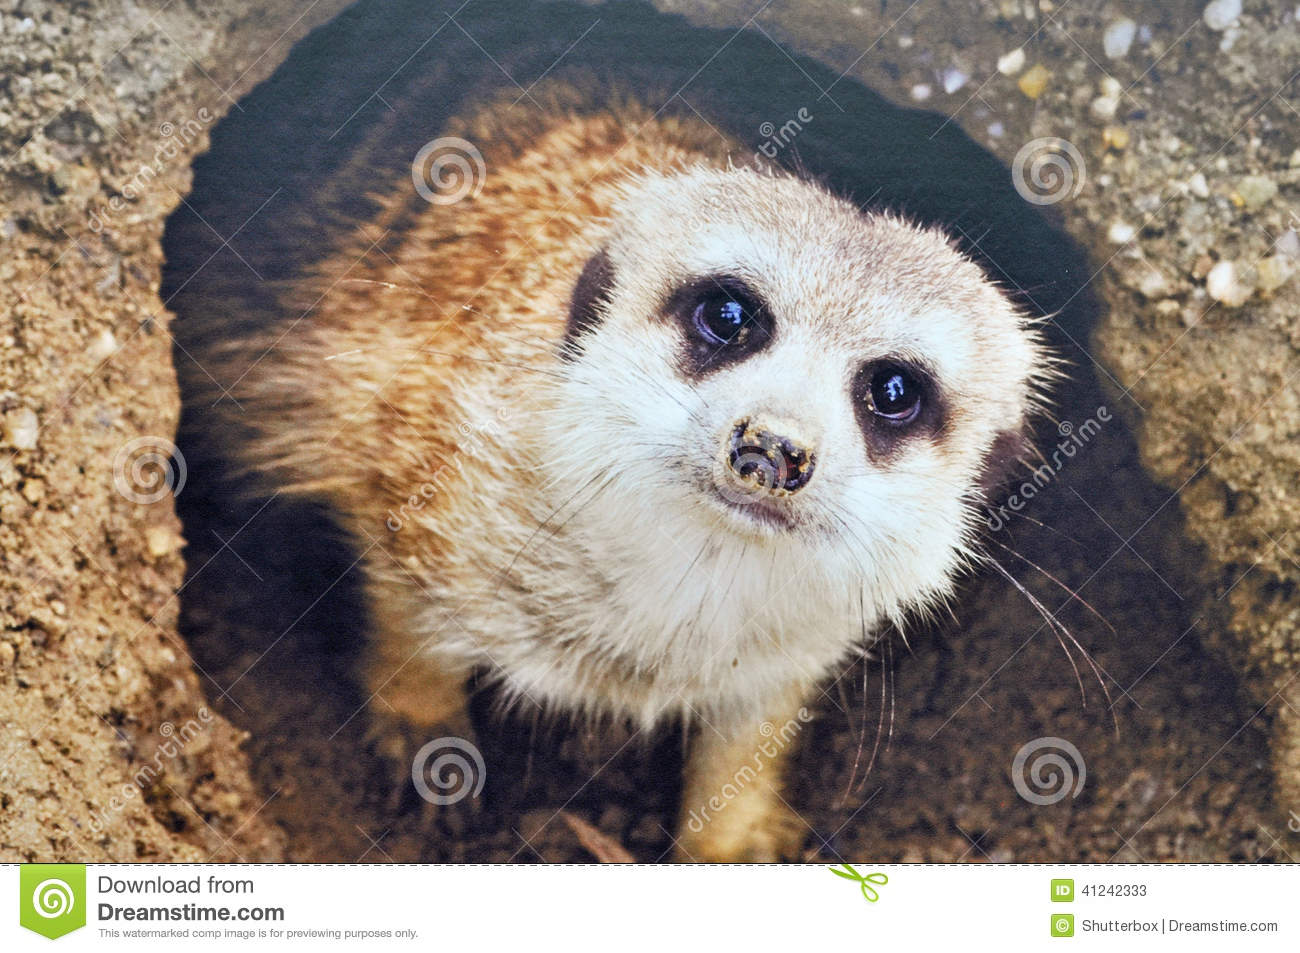 Cute south african meerkat coming out of its burrow close up shot of